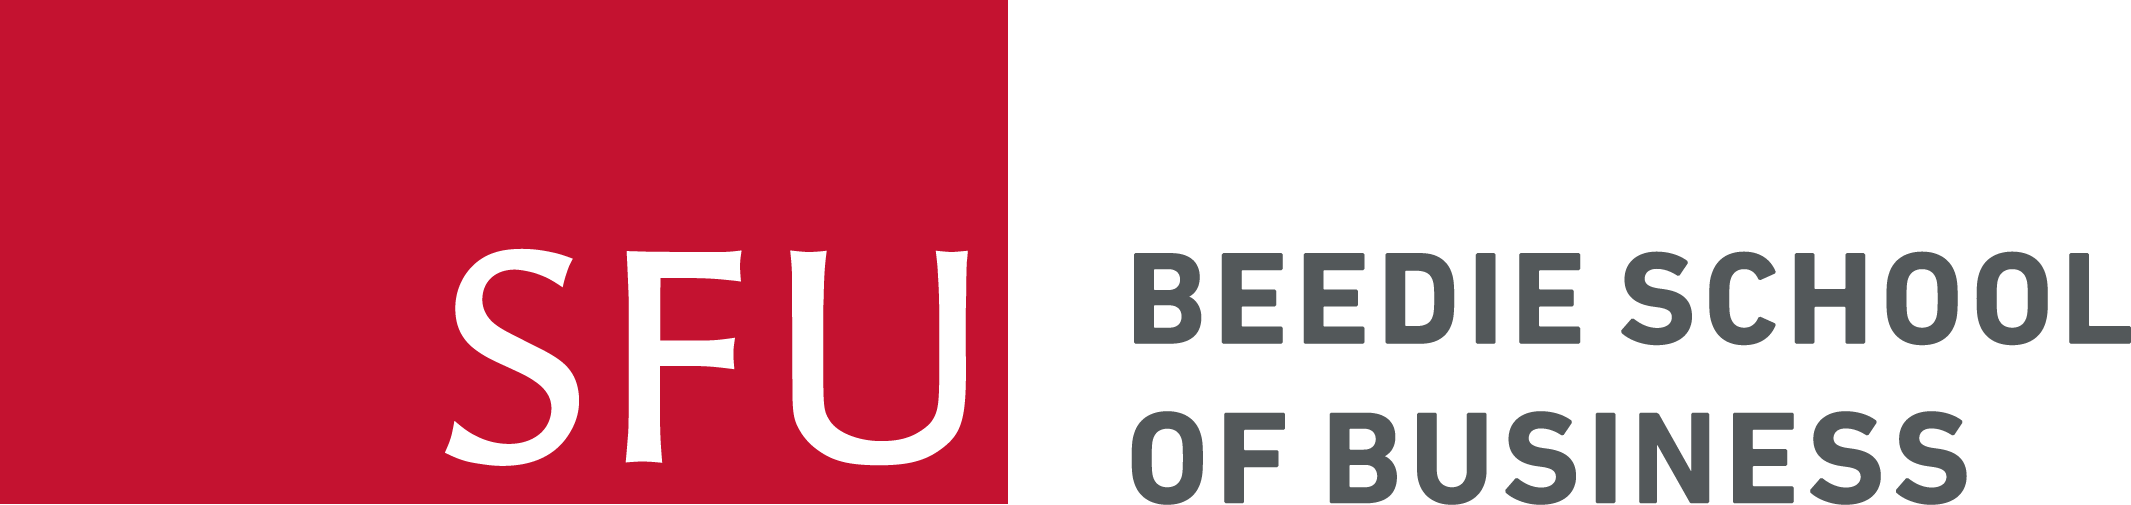 Beedie School of Business, Simon Fraser University